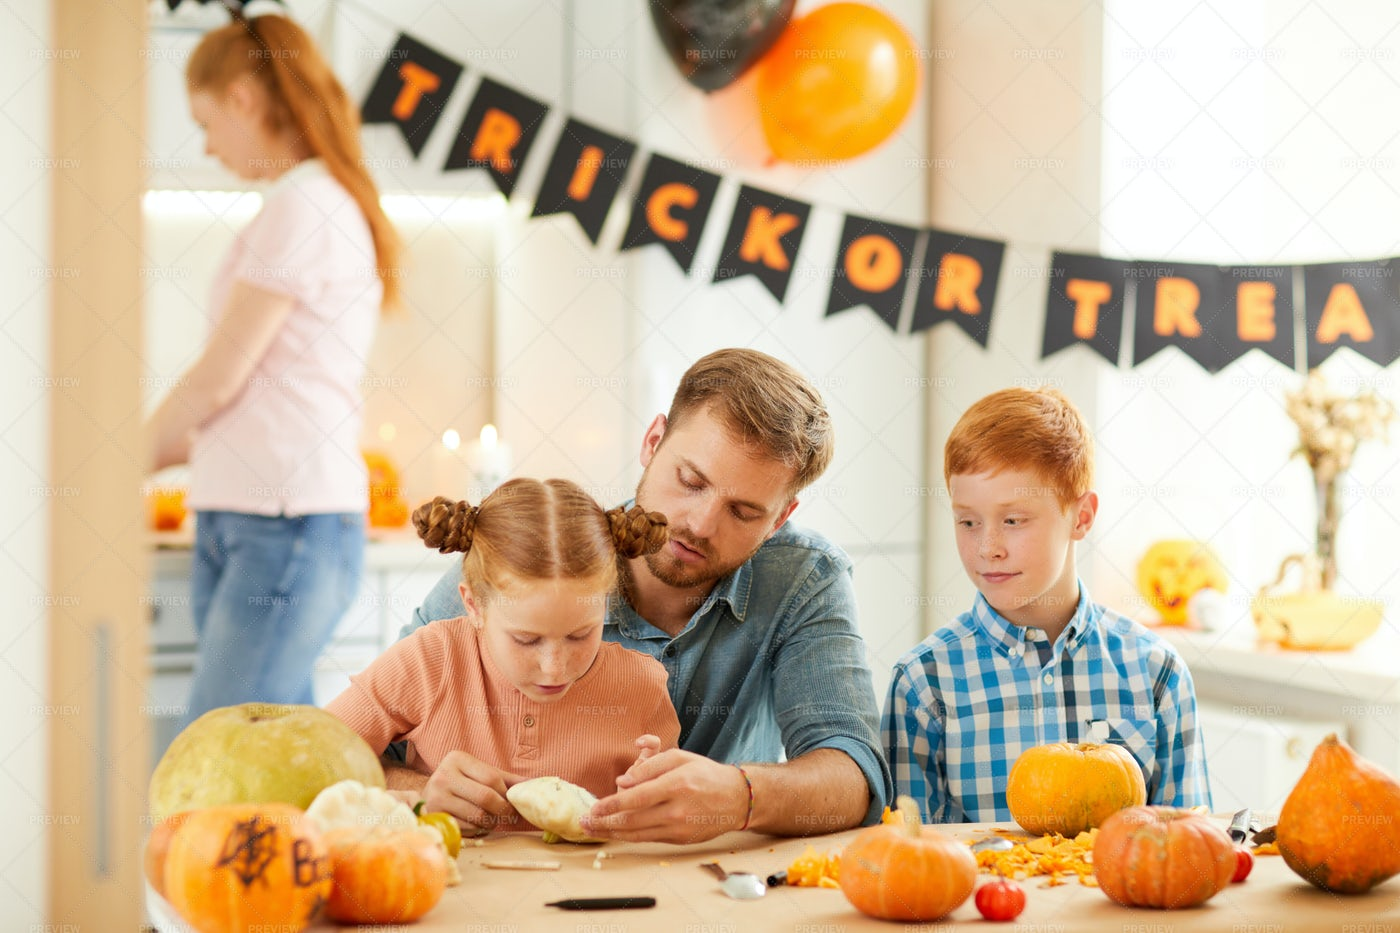 Happy Family Working Together: Stock Photos